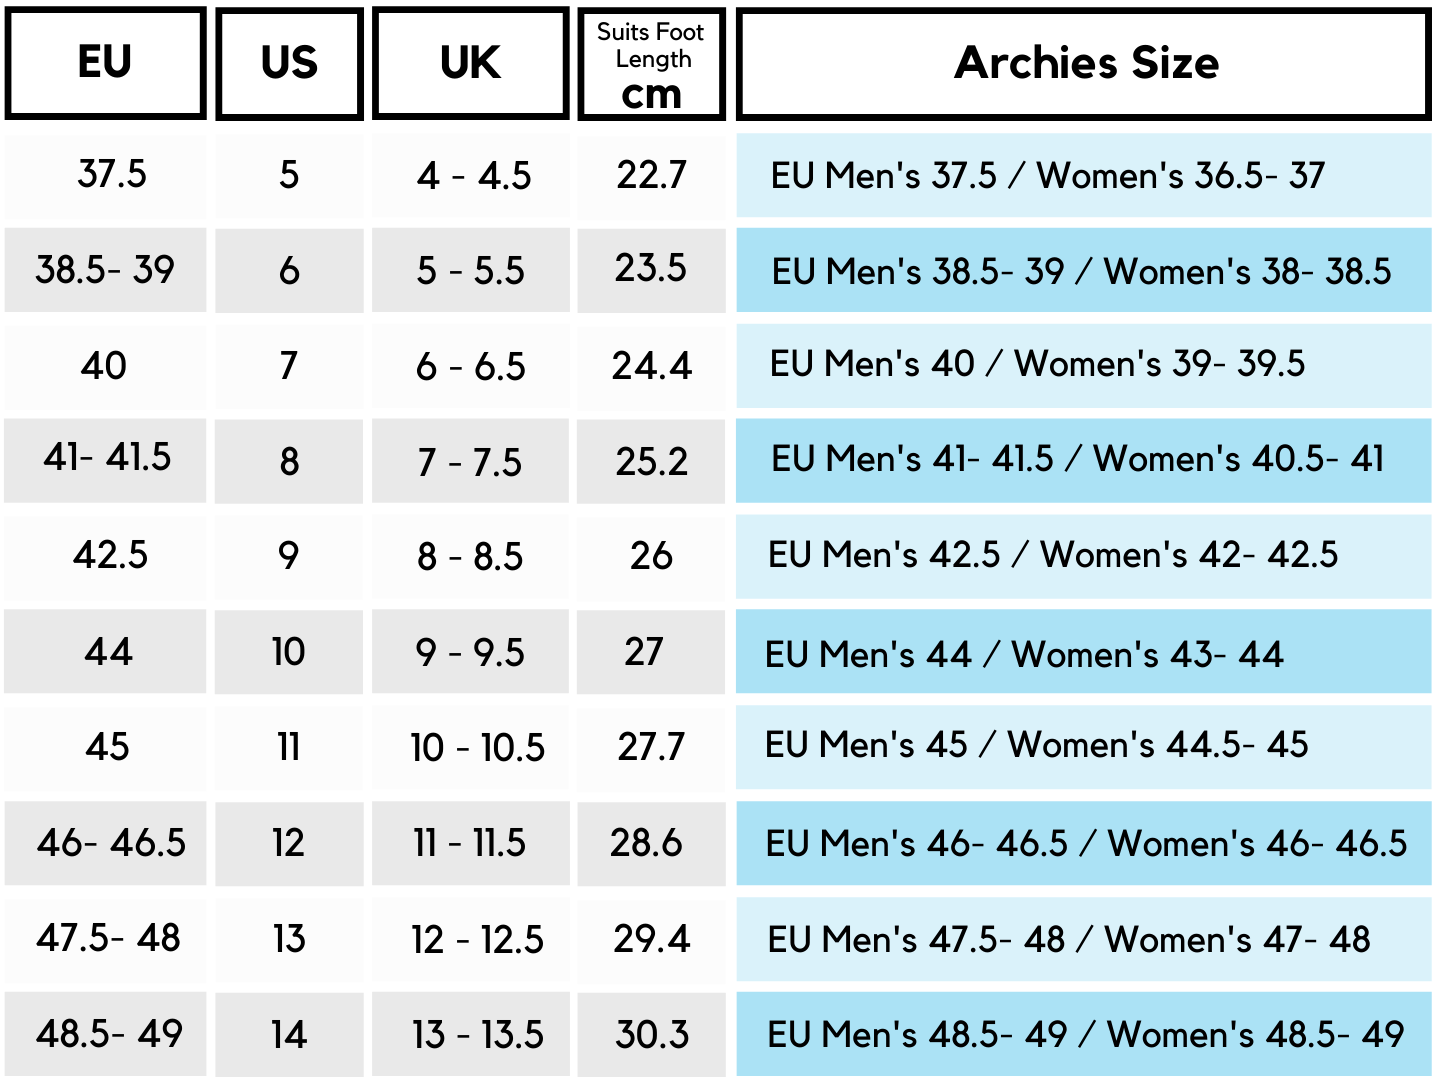 EU Archies Men's Size Chart